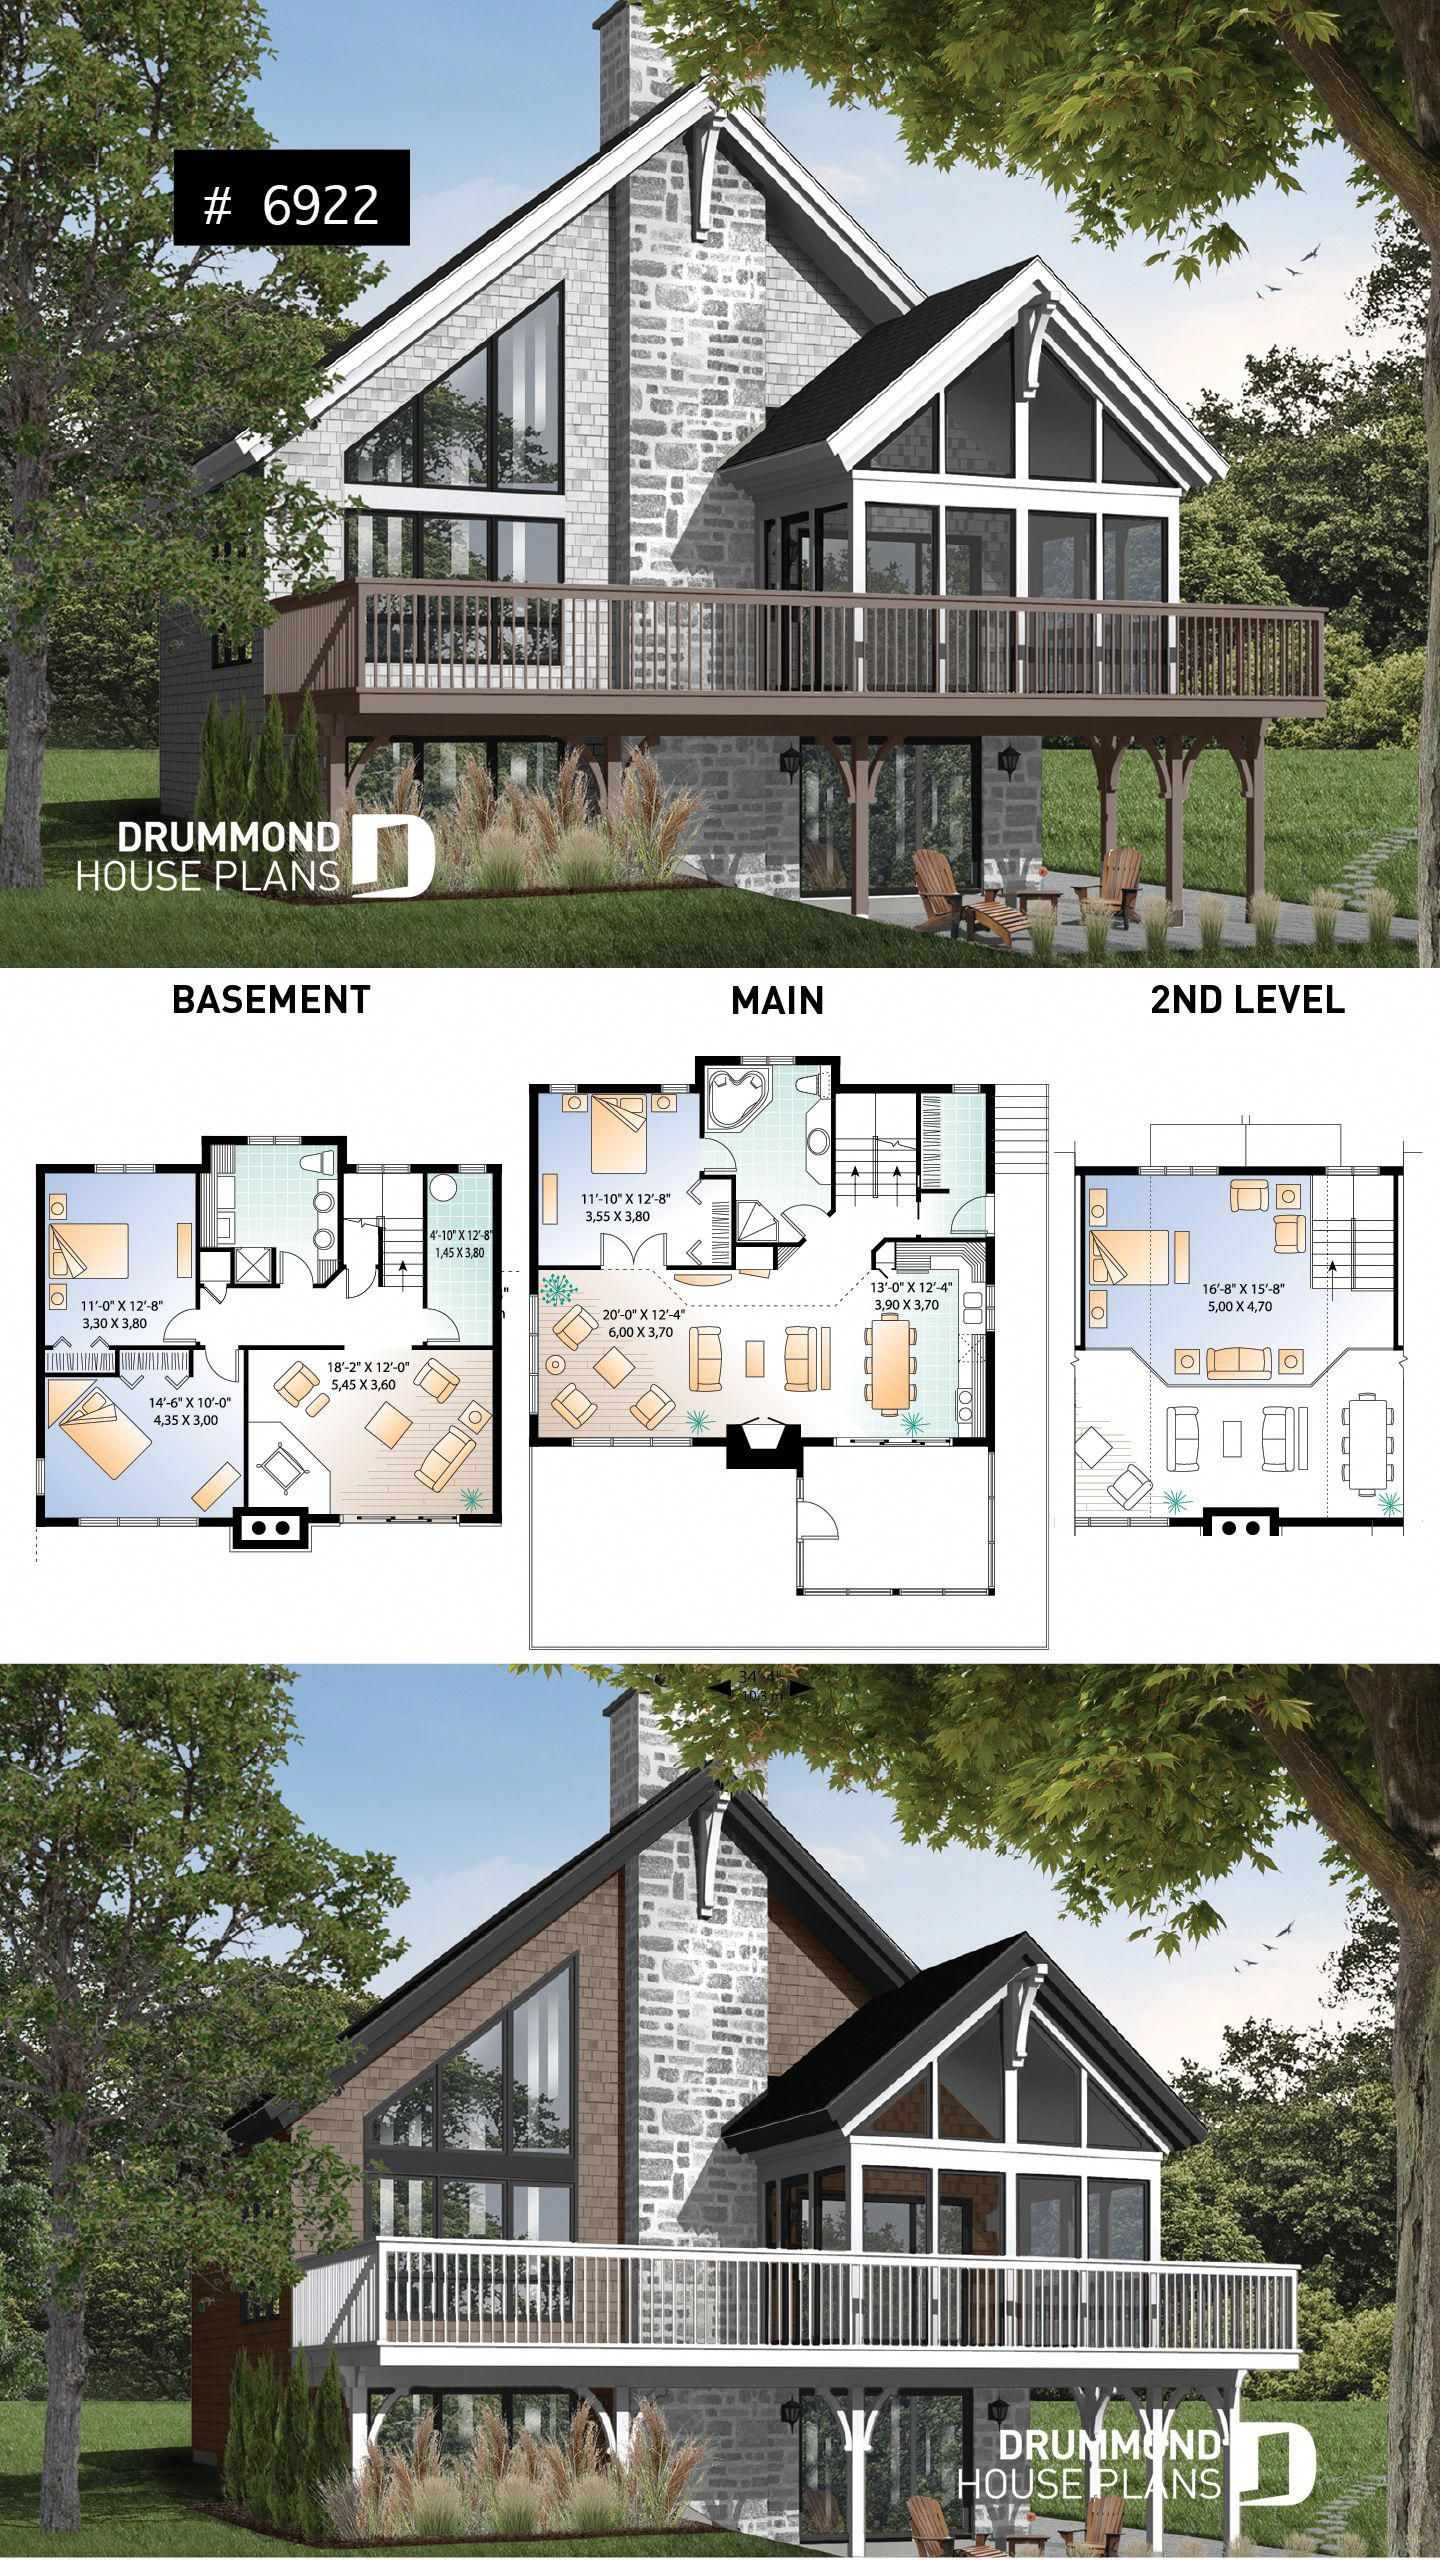 Rustic Cottage Plan Scandinavian Style Home With Open Loft On Mezzanine And 4 Bedrooms Cottagedecor Lake House Plans Rustic House Plans Cottage Plan